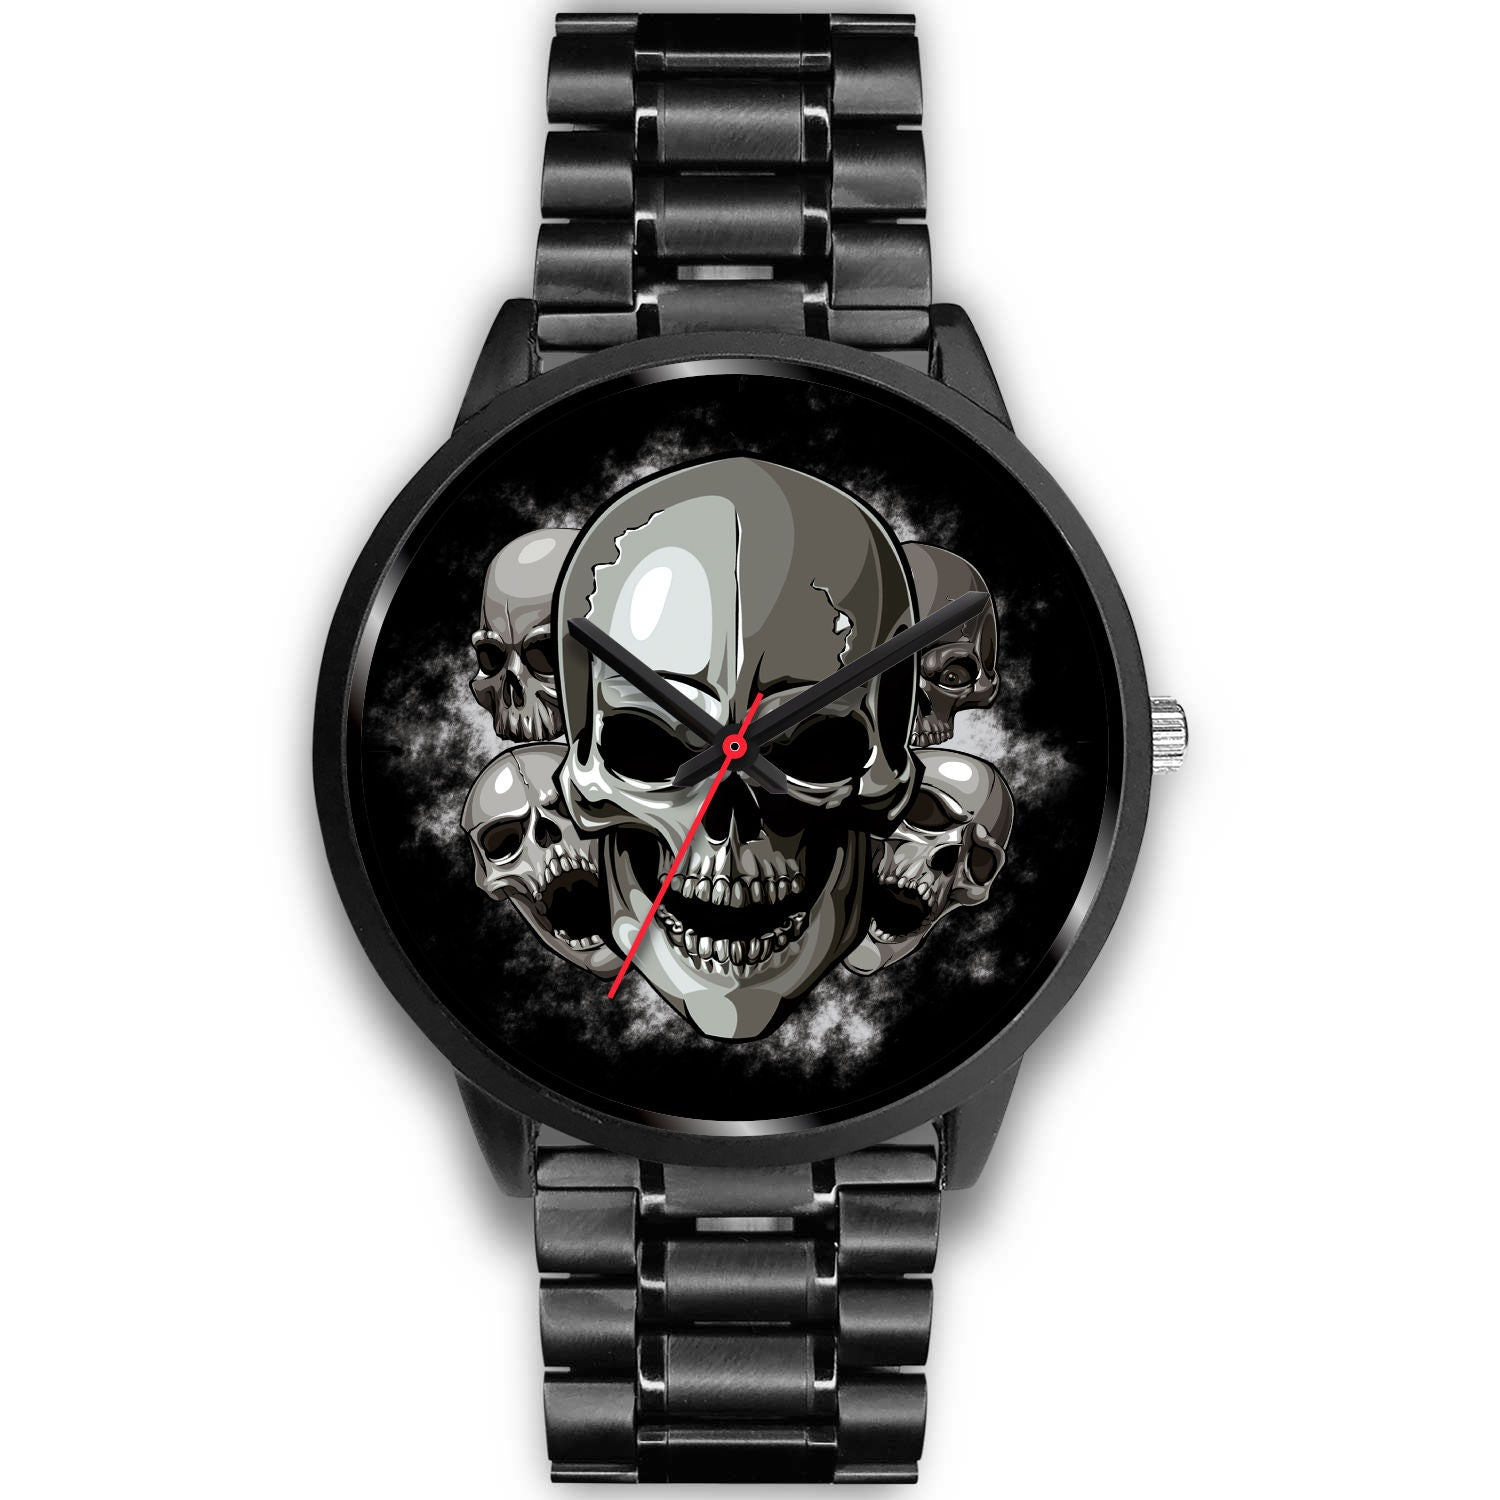 5 Heads Skull Watch